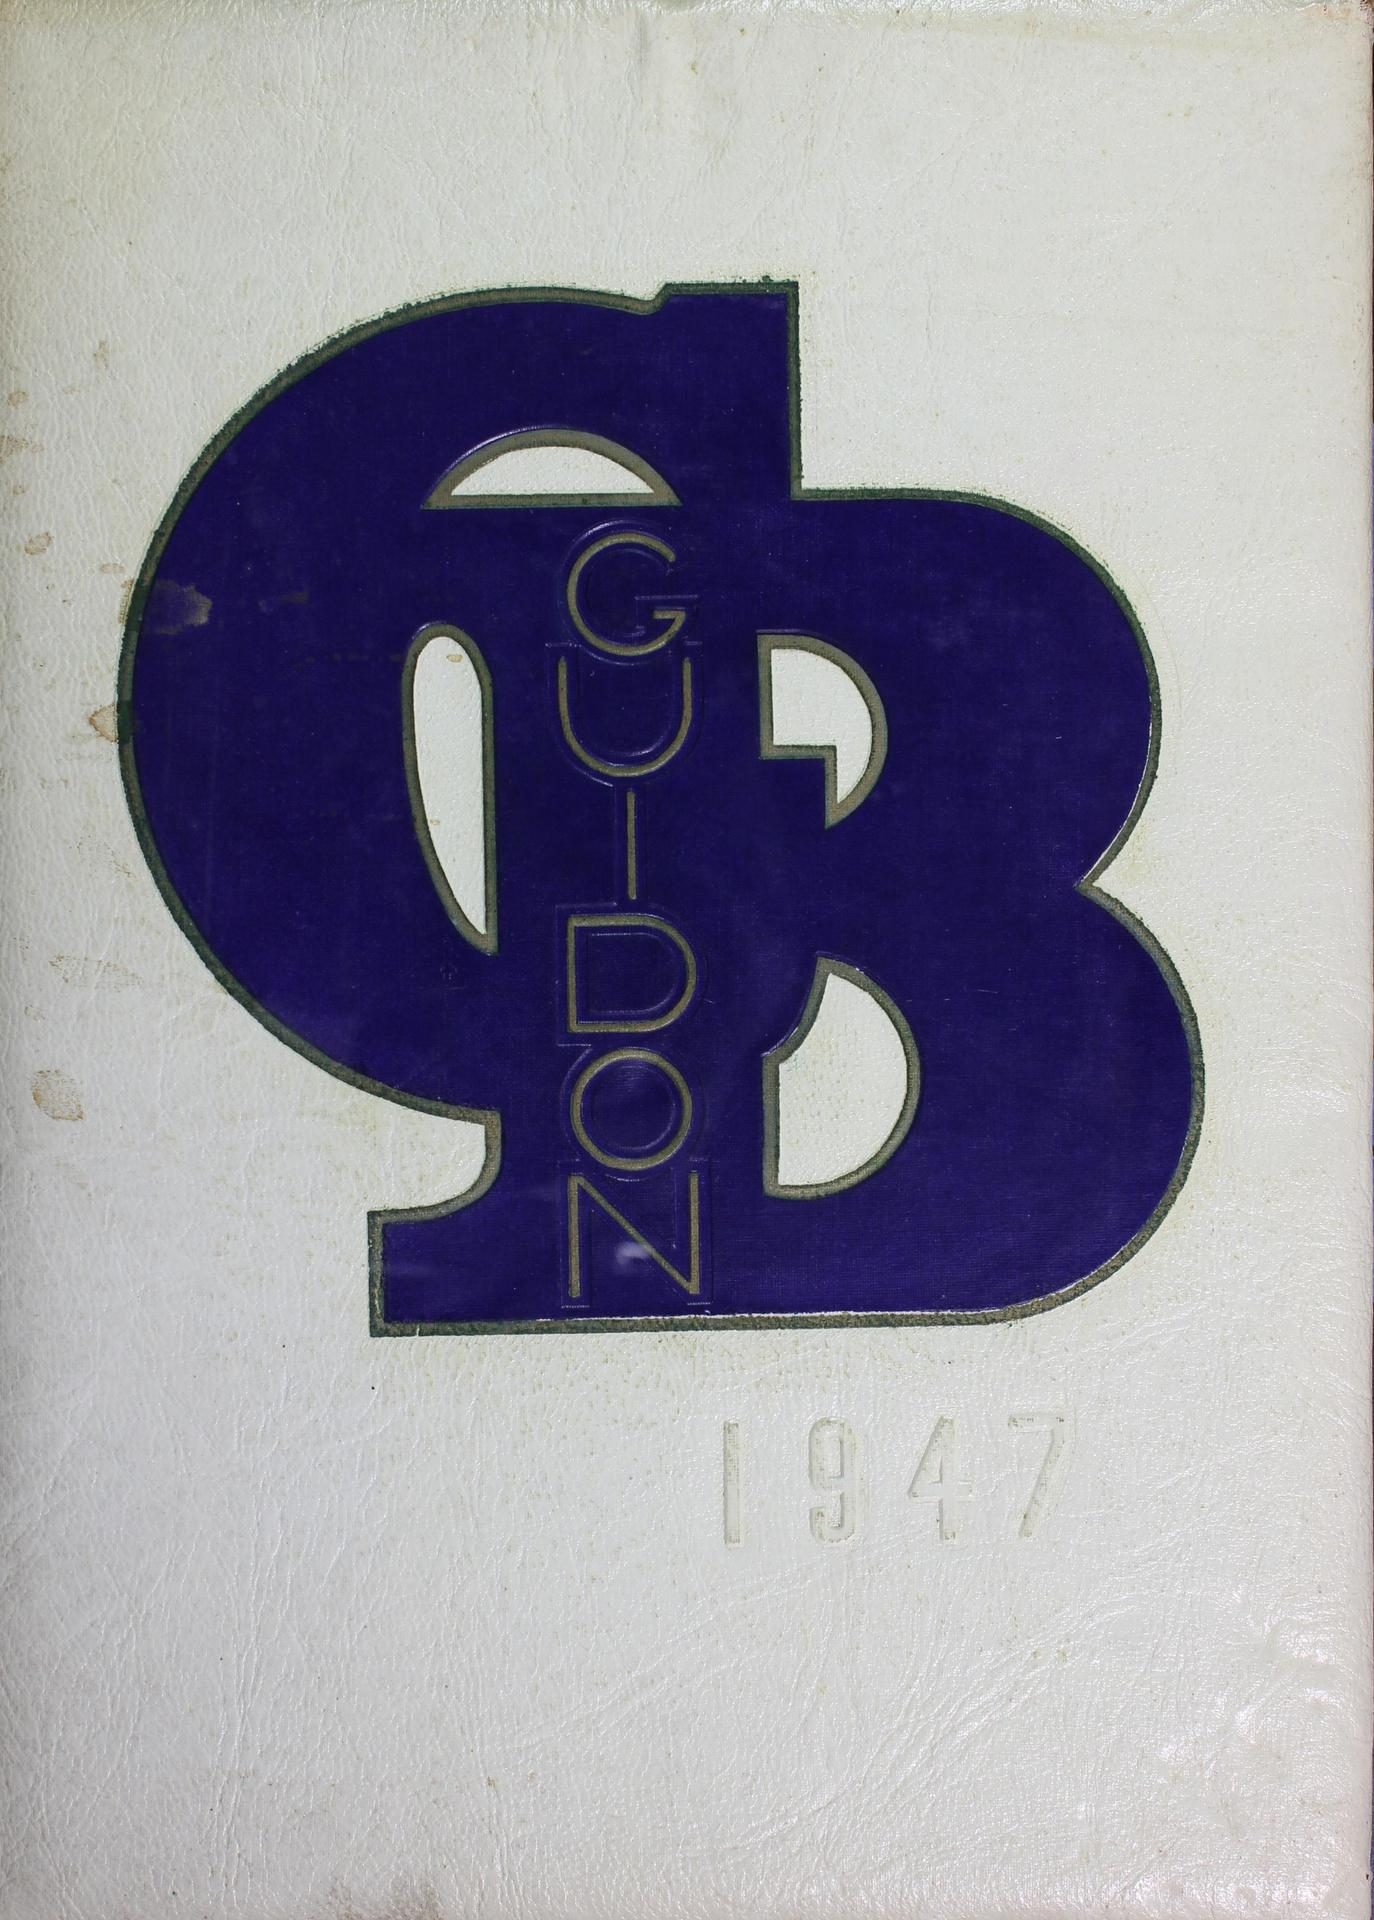 1947 CBC Yearbook